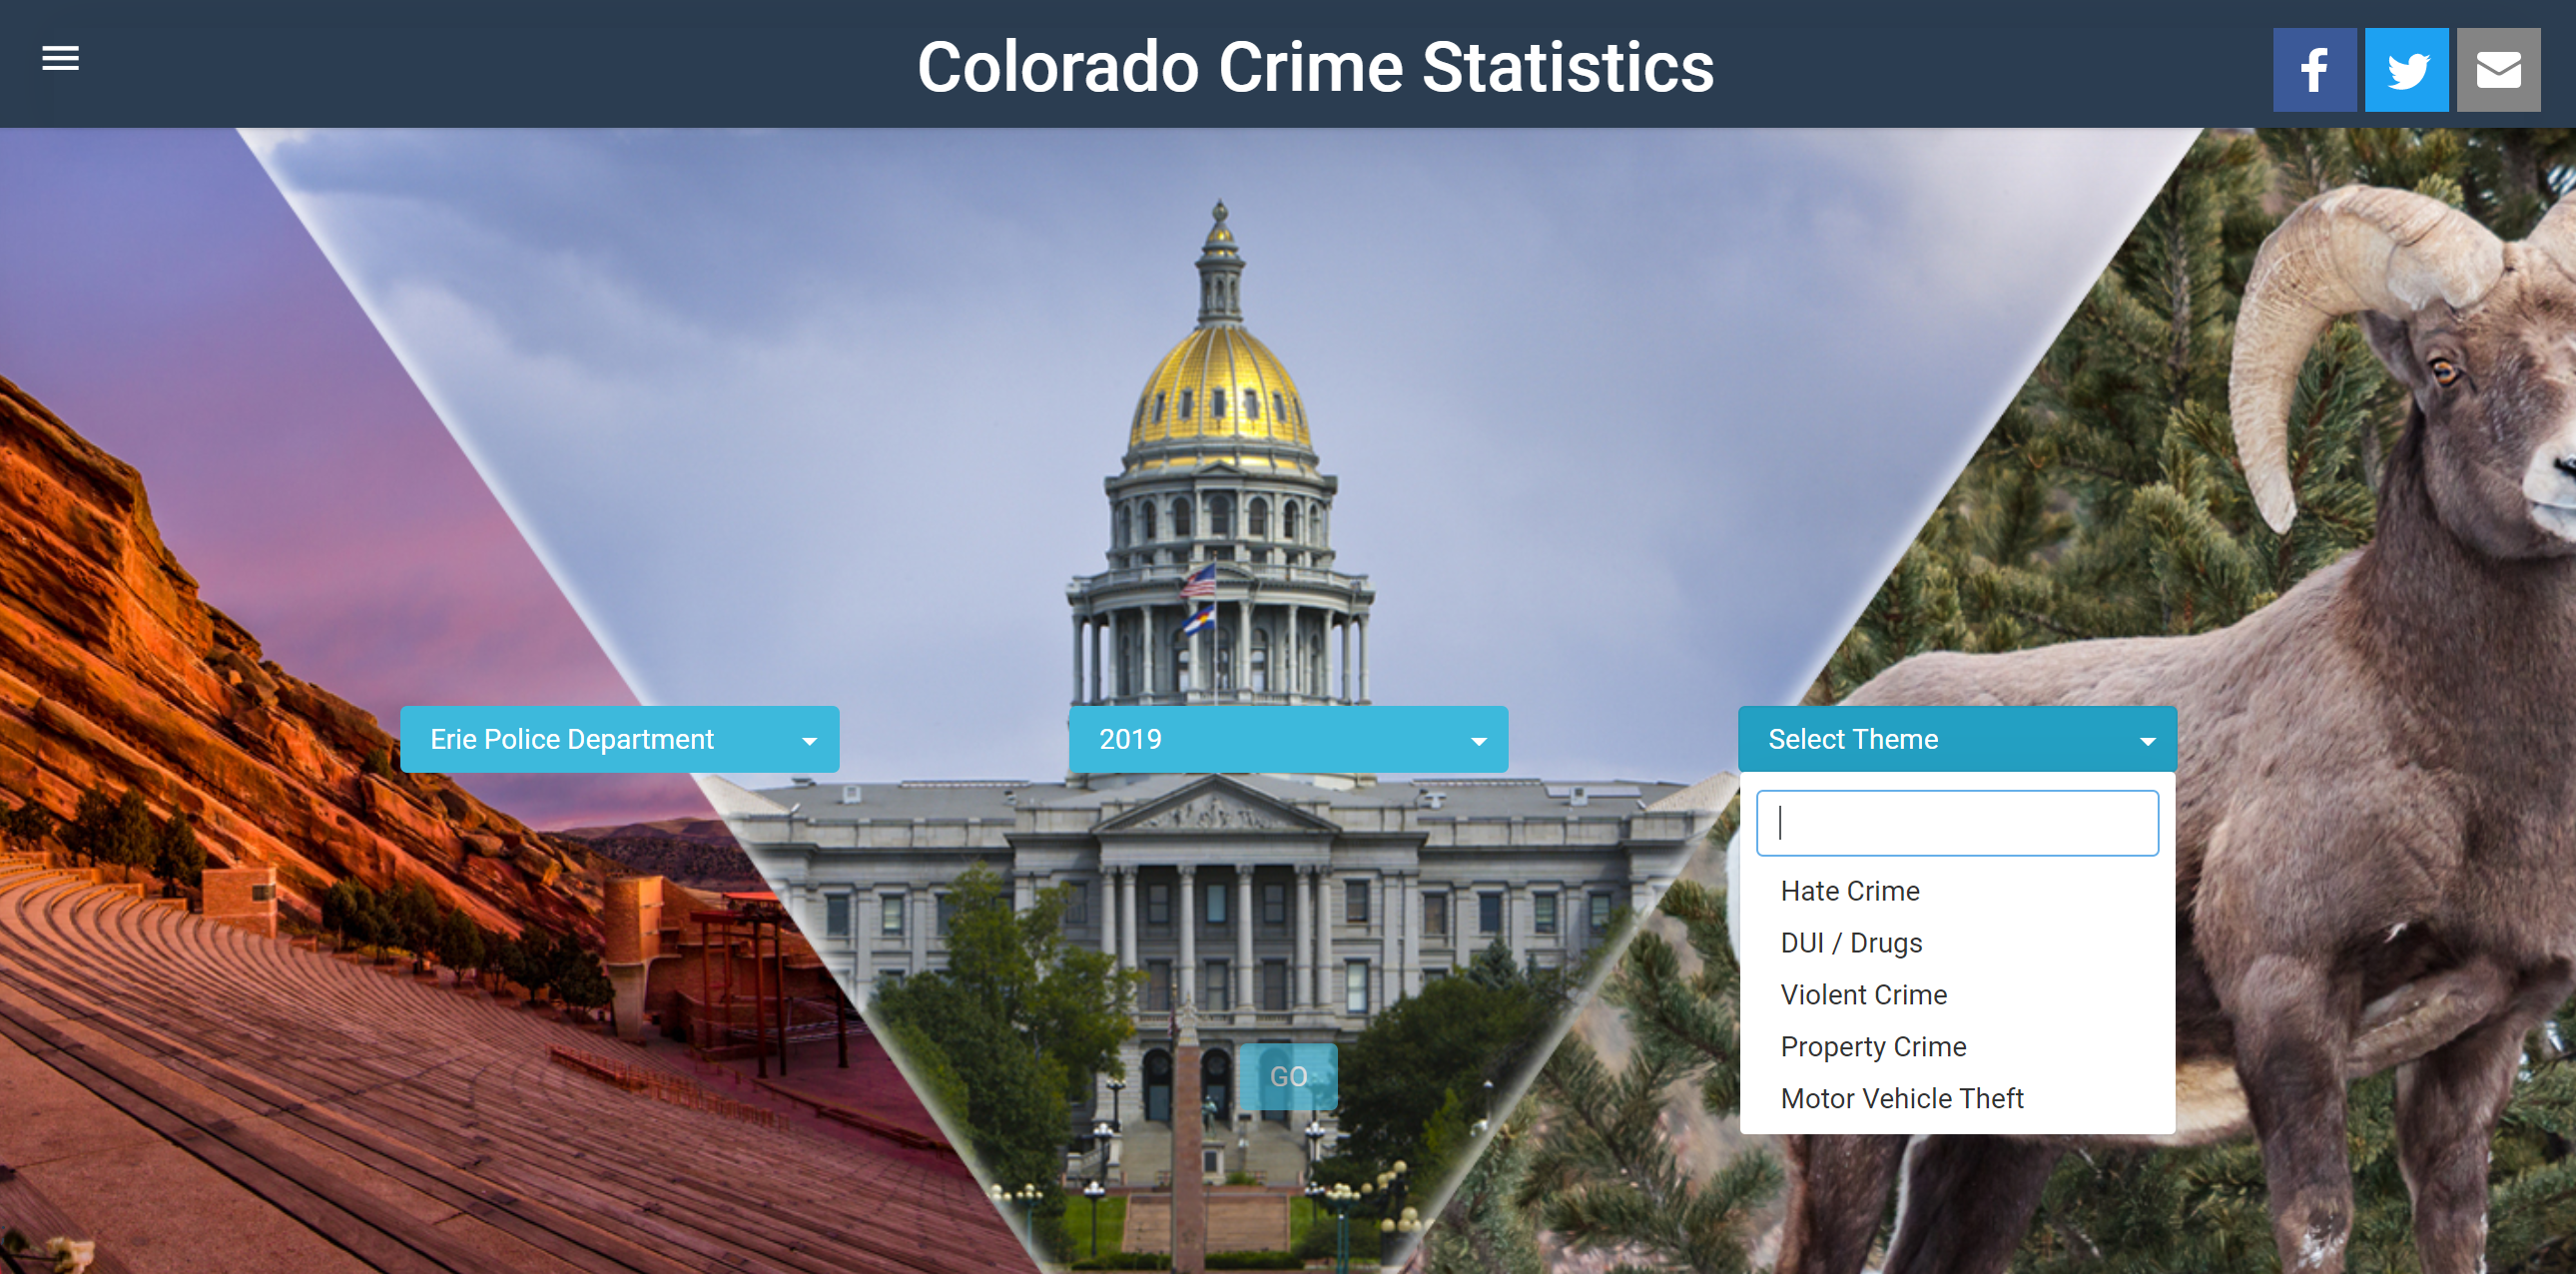 Colorado Crime Statistics Opens in new window